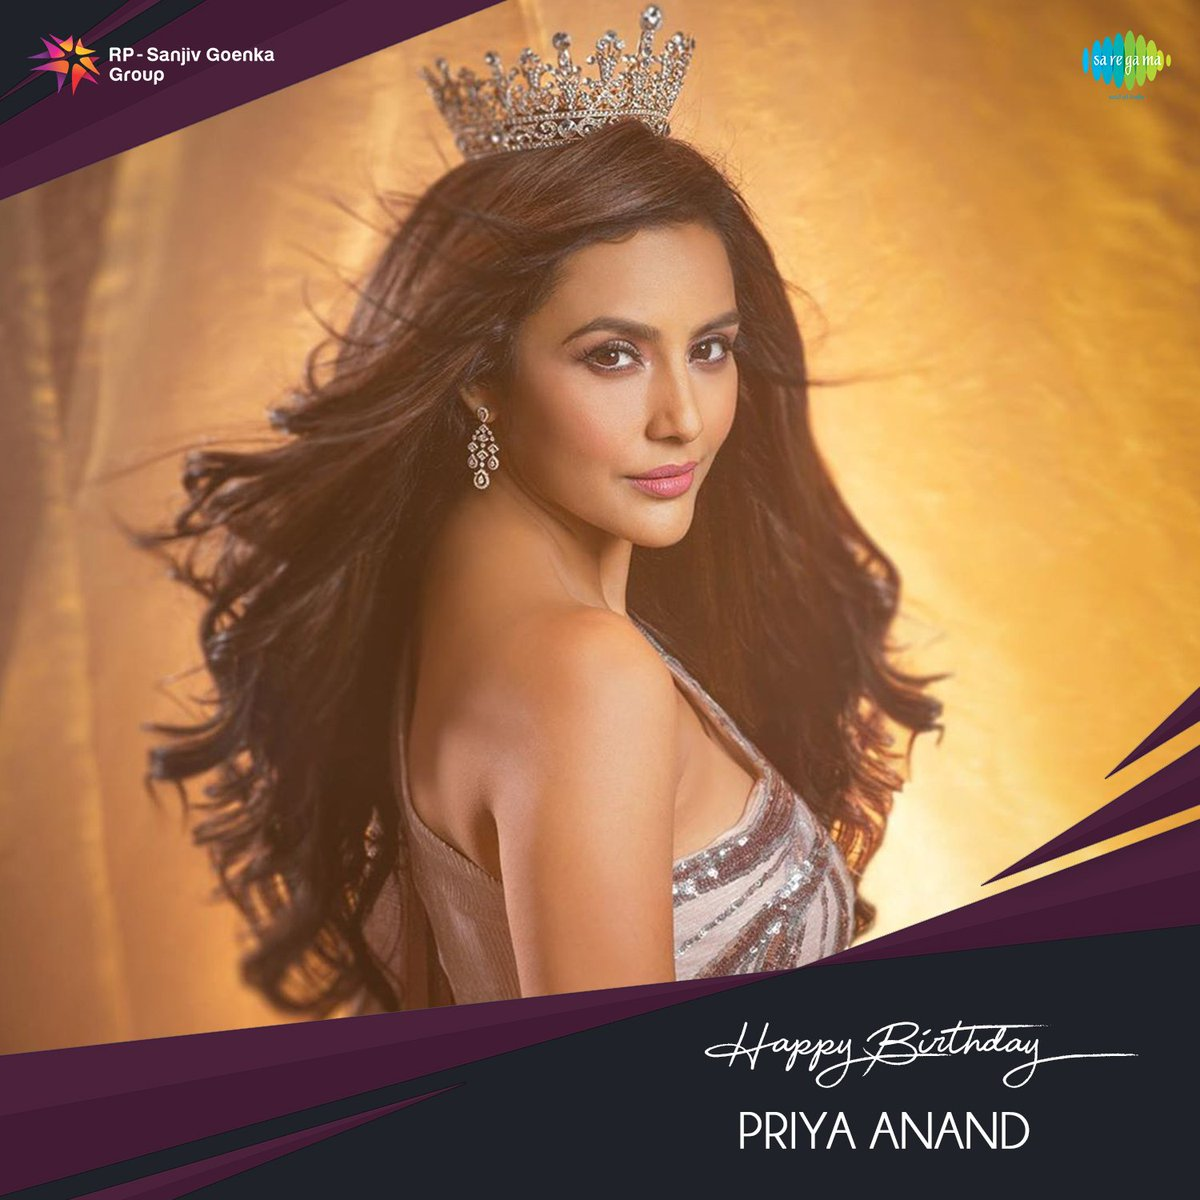 Birthday wishes to the dazzling diva @PriyaAnand   #SaregamaWishes #HappyBirthdayPriyaAnand #HBDPriyaAnand https://t.co/5Pe20DSFkl